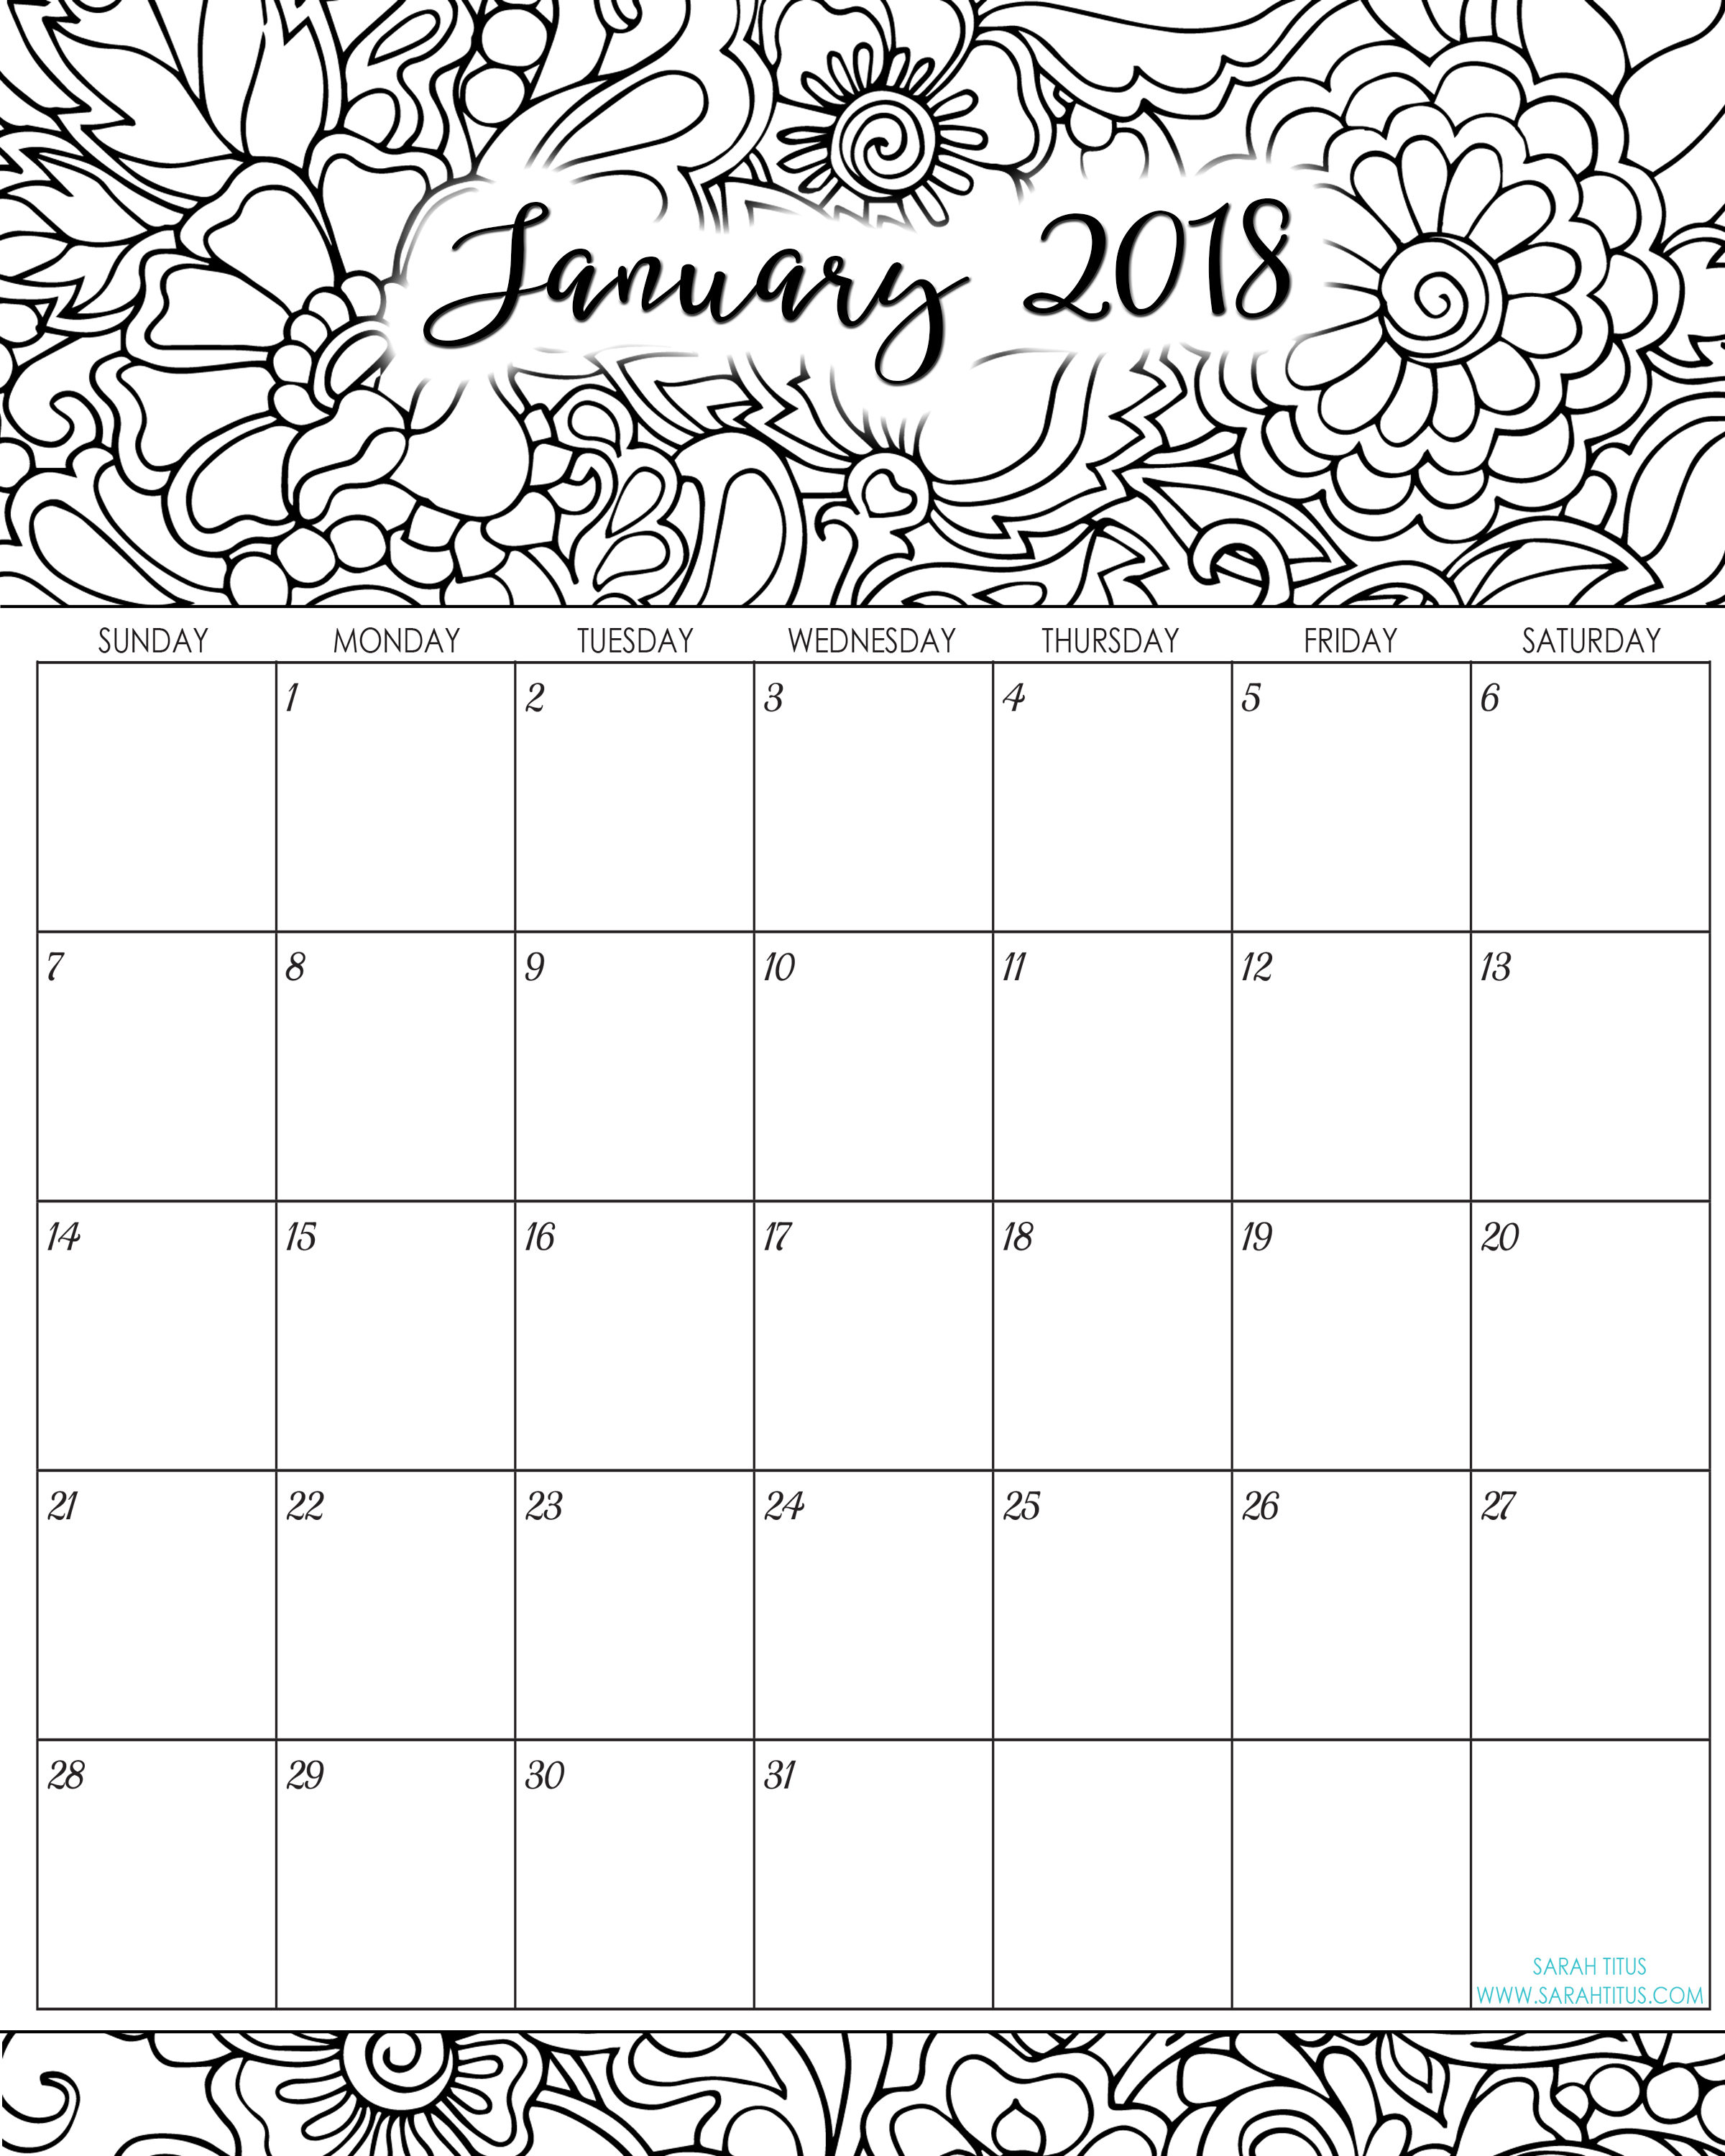 2019 Coloring Calendar With 2018 Monthly Calendars Printables Sarah Titus